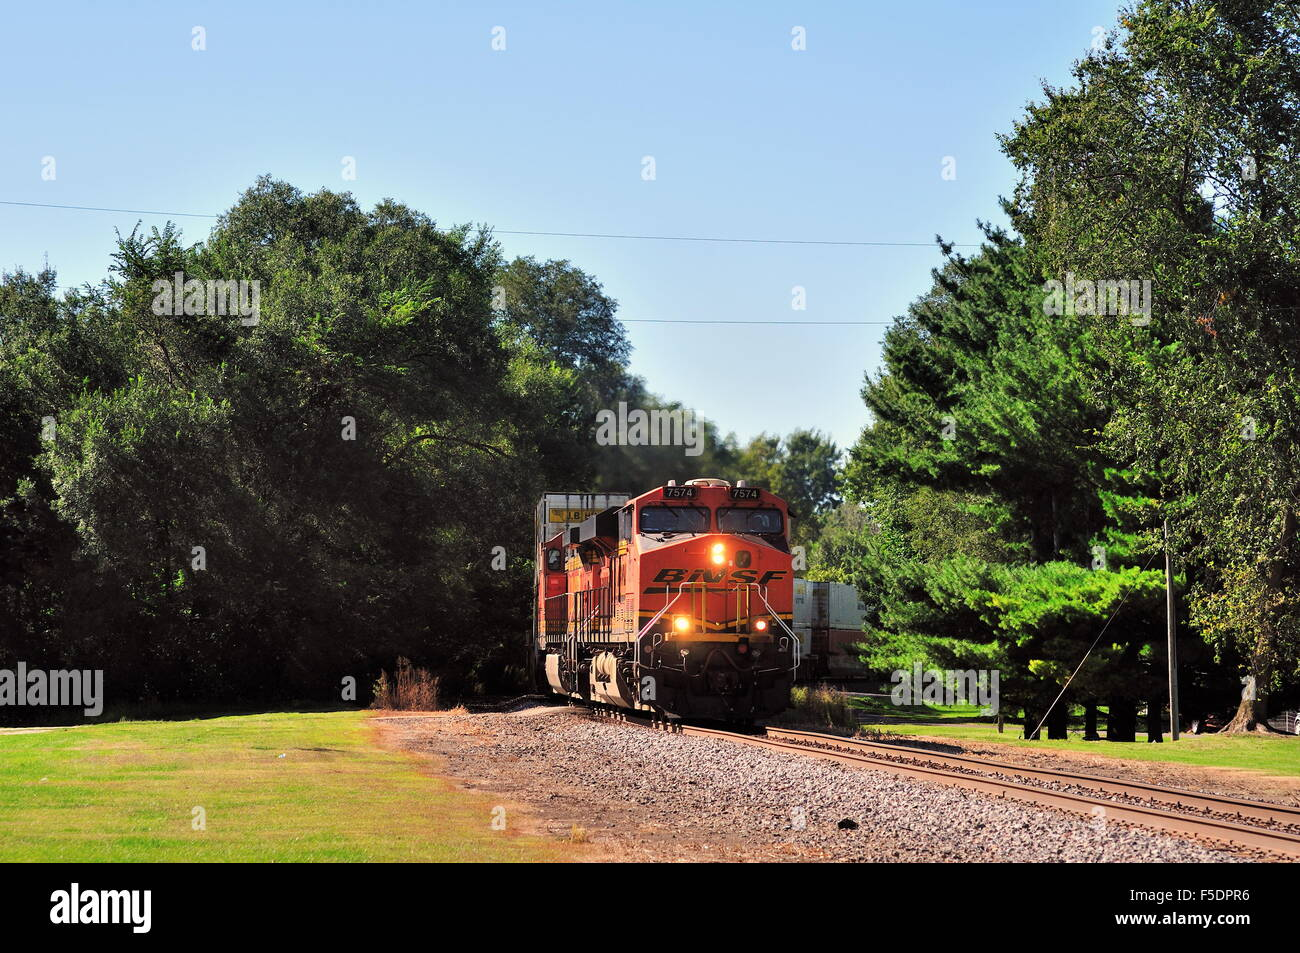 A Burlington Northern Santa Fe freight train as it rumbles through a curve in Steward, Illinois on its way to Chicago. - Stock Image